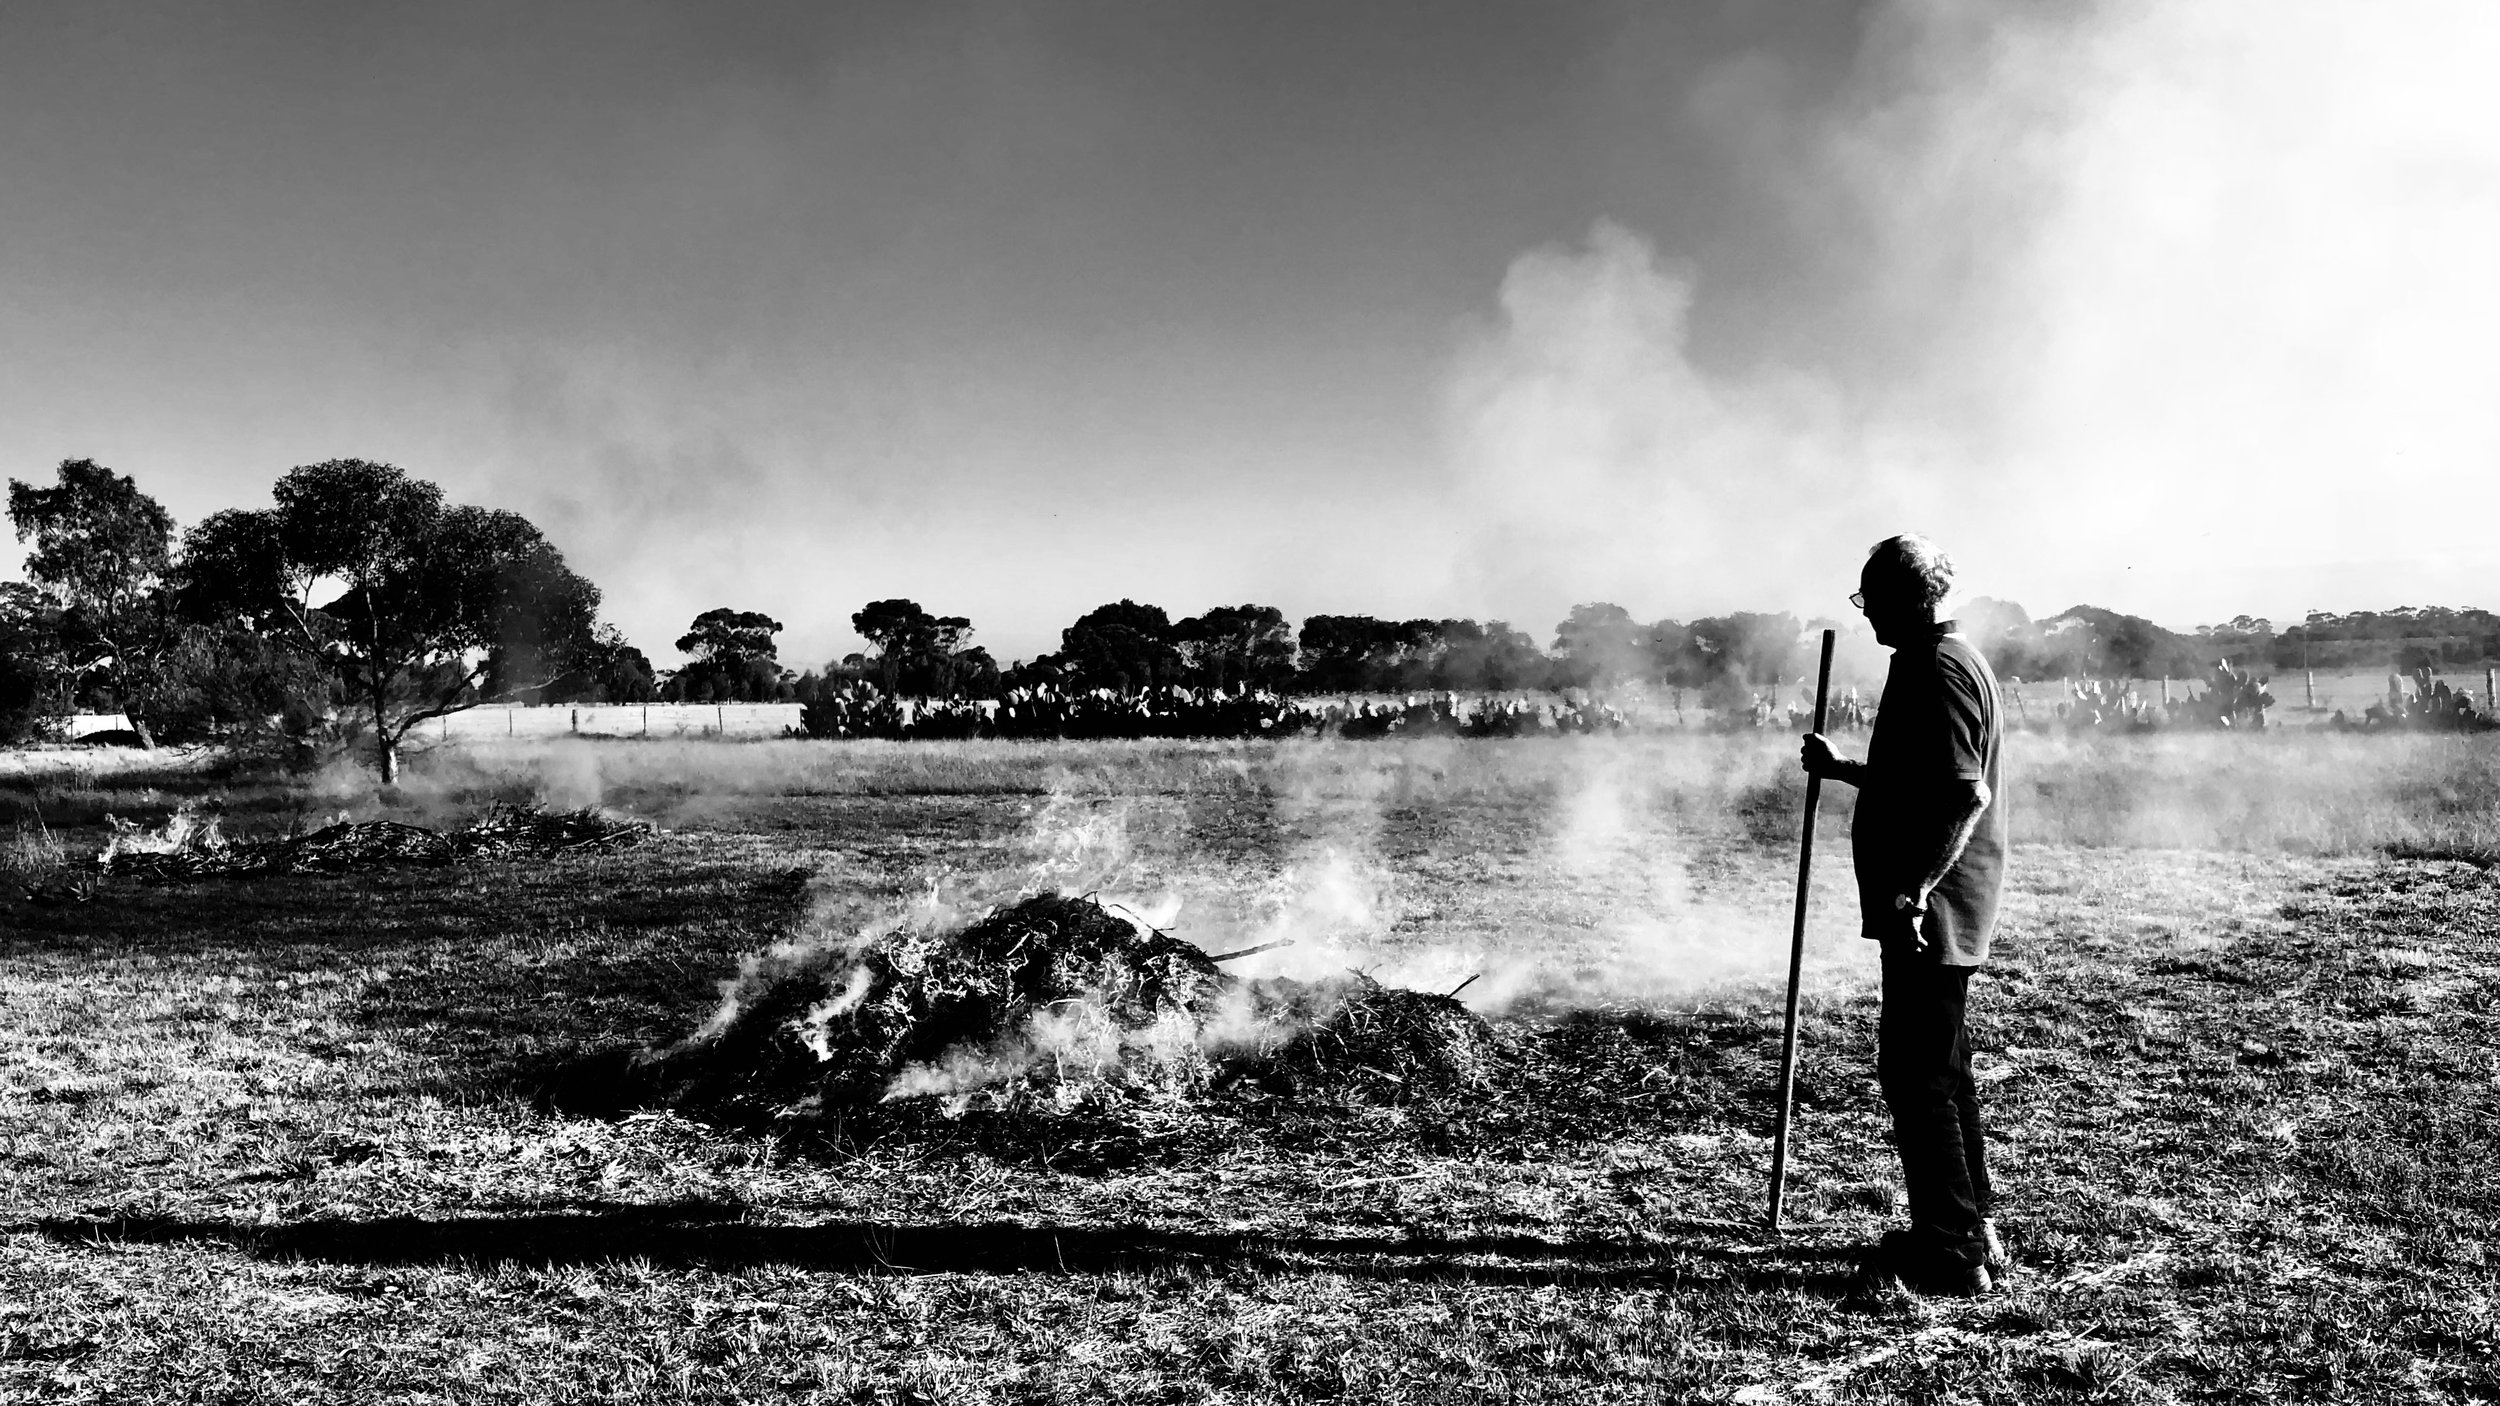 Keeping the home fires burning Diggers Rest VIC Australia June 2018